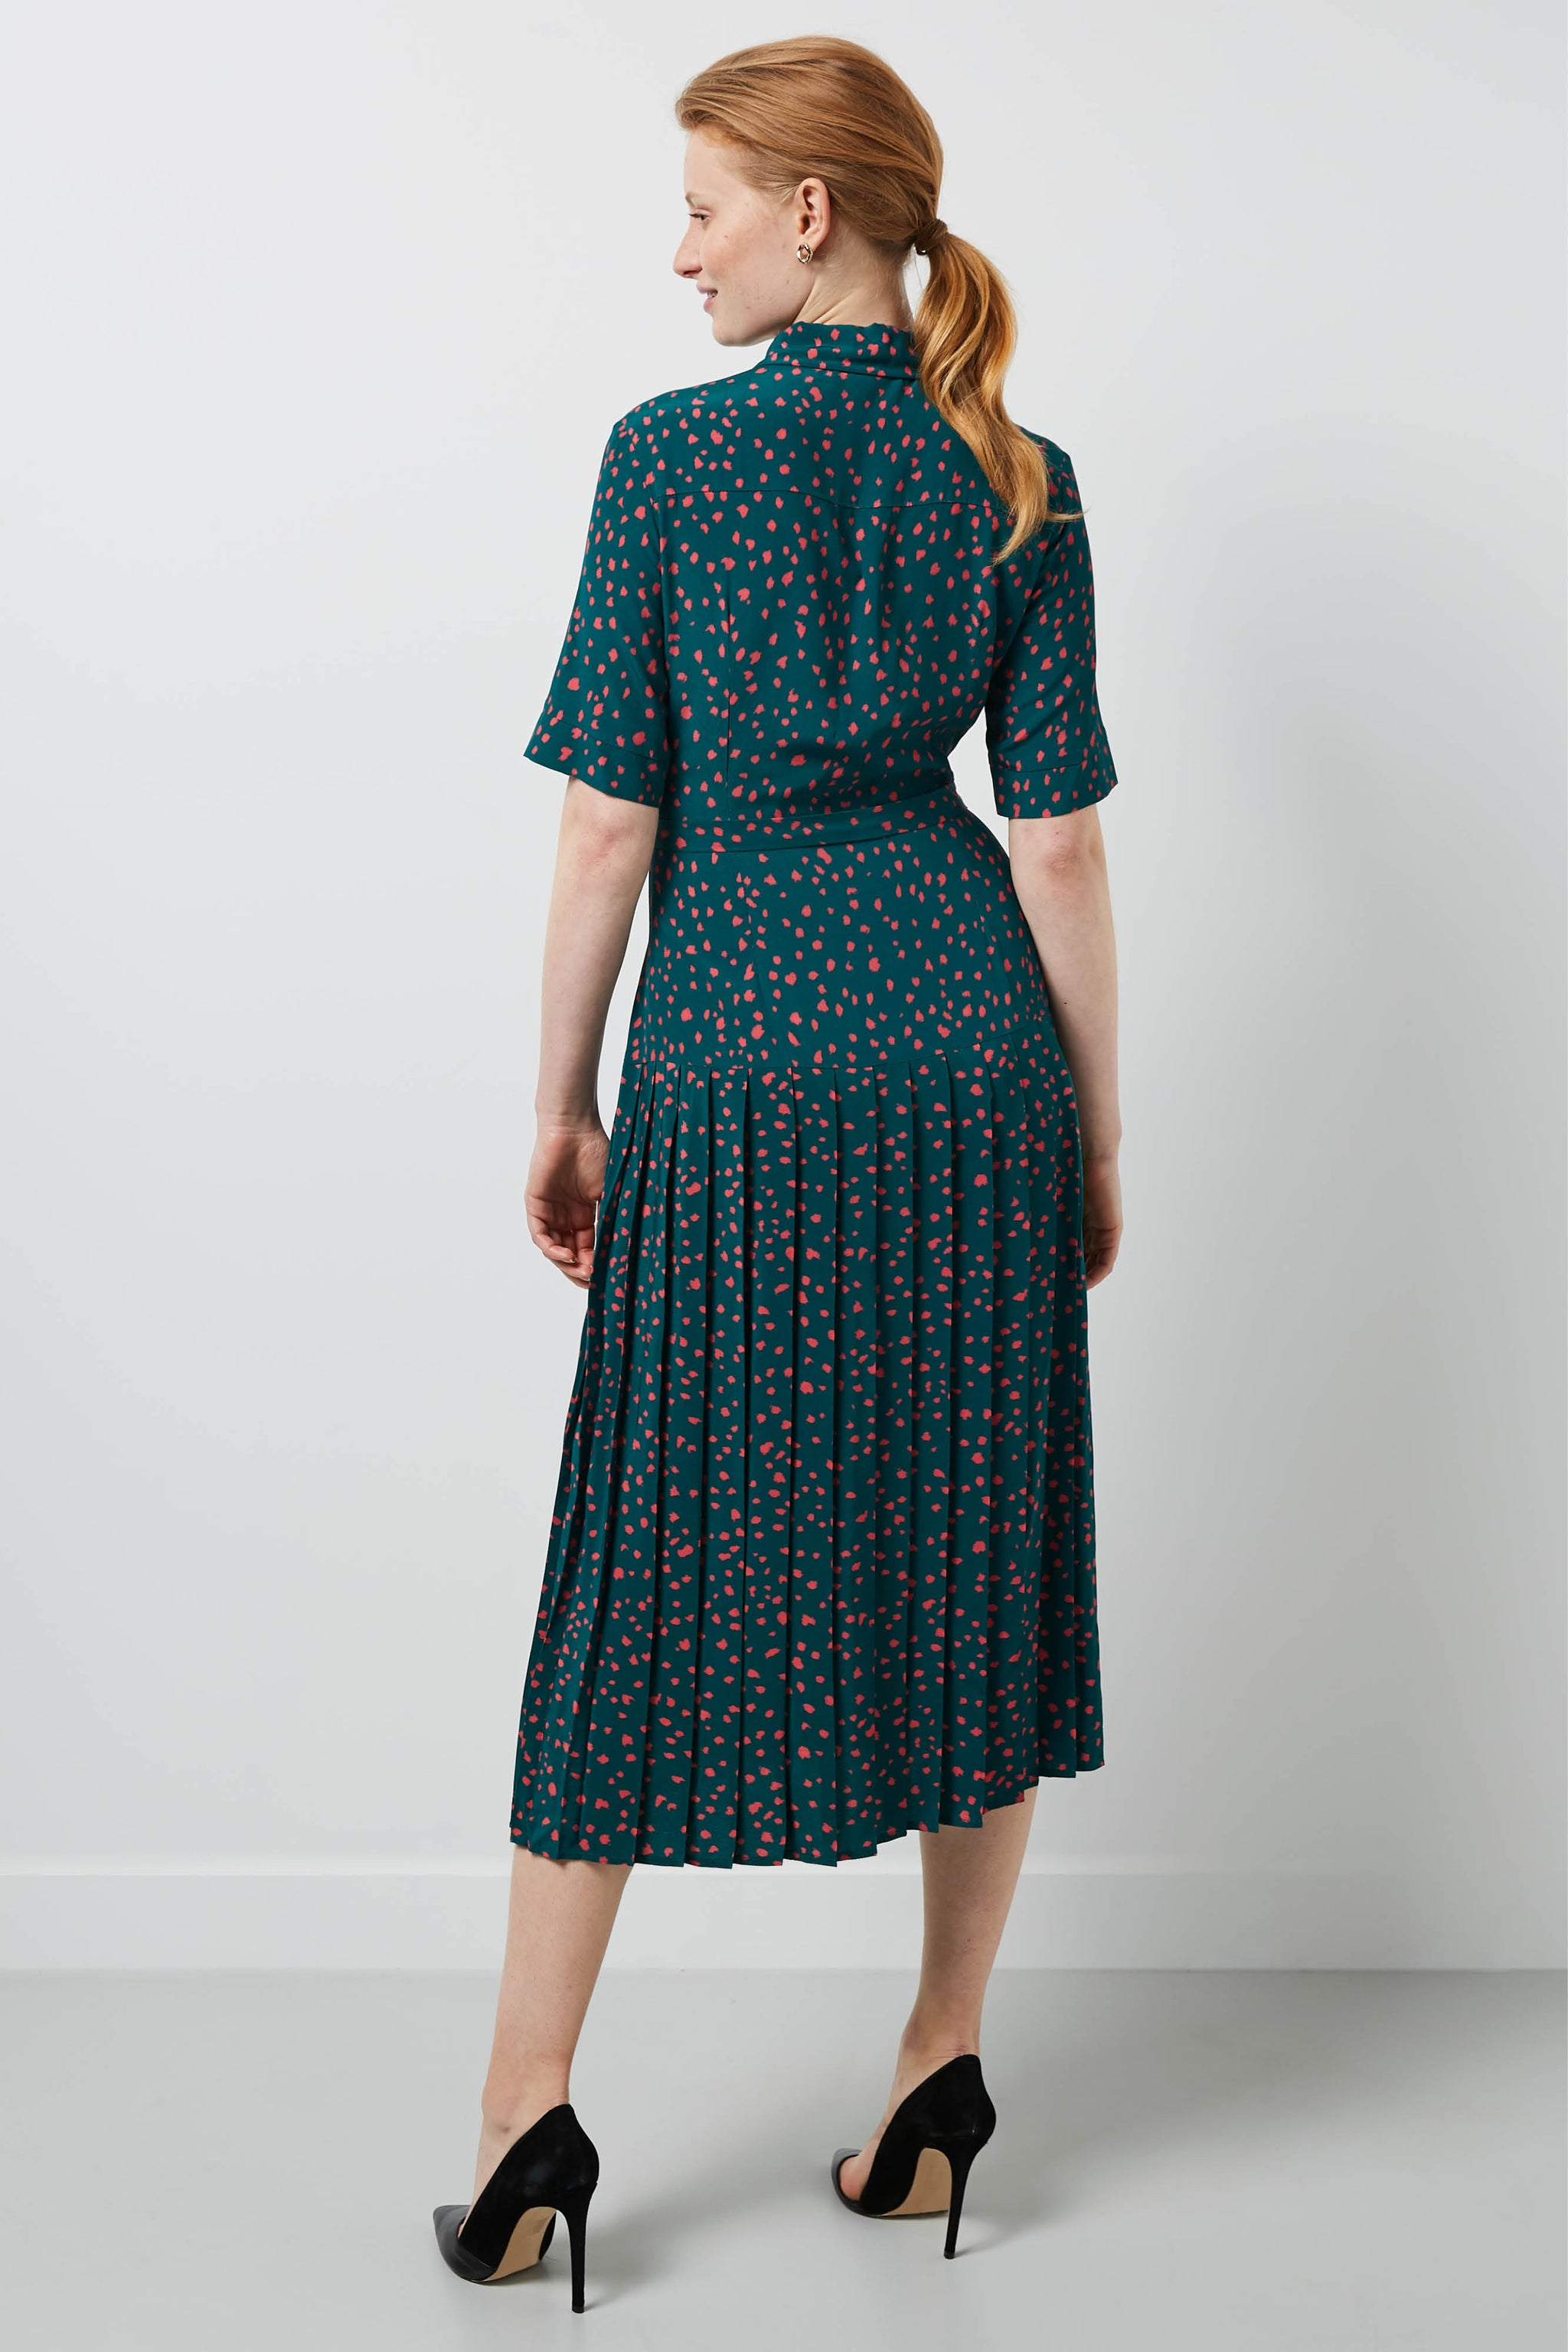 Tavistock Green Dapple Print Shirt Dress